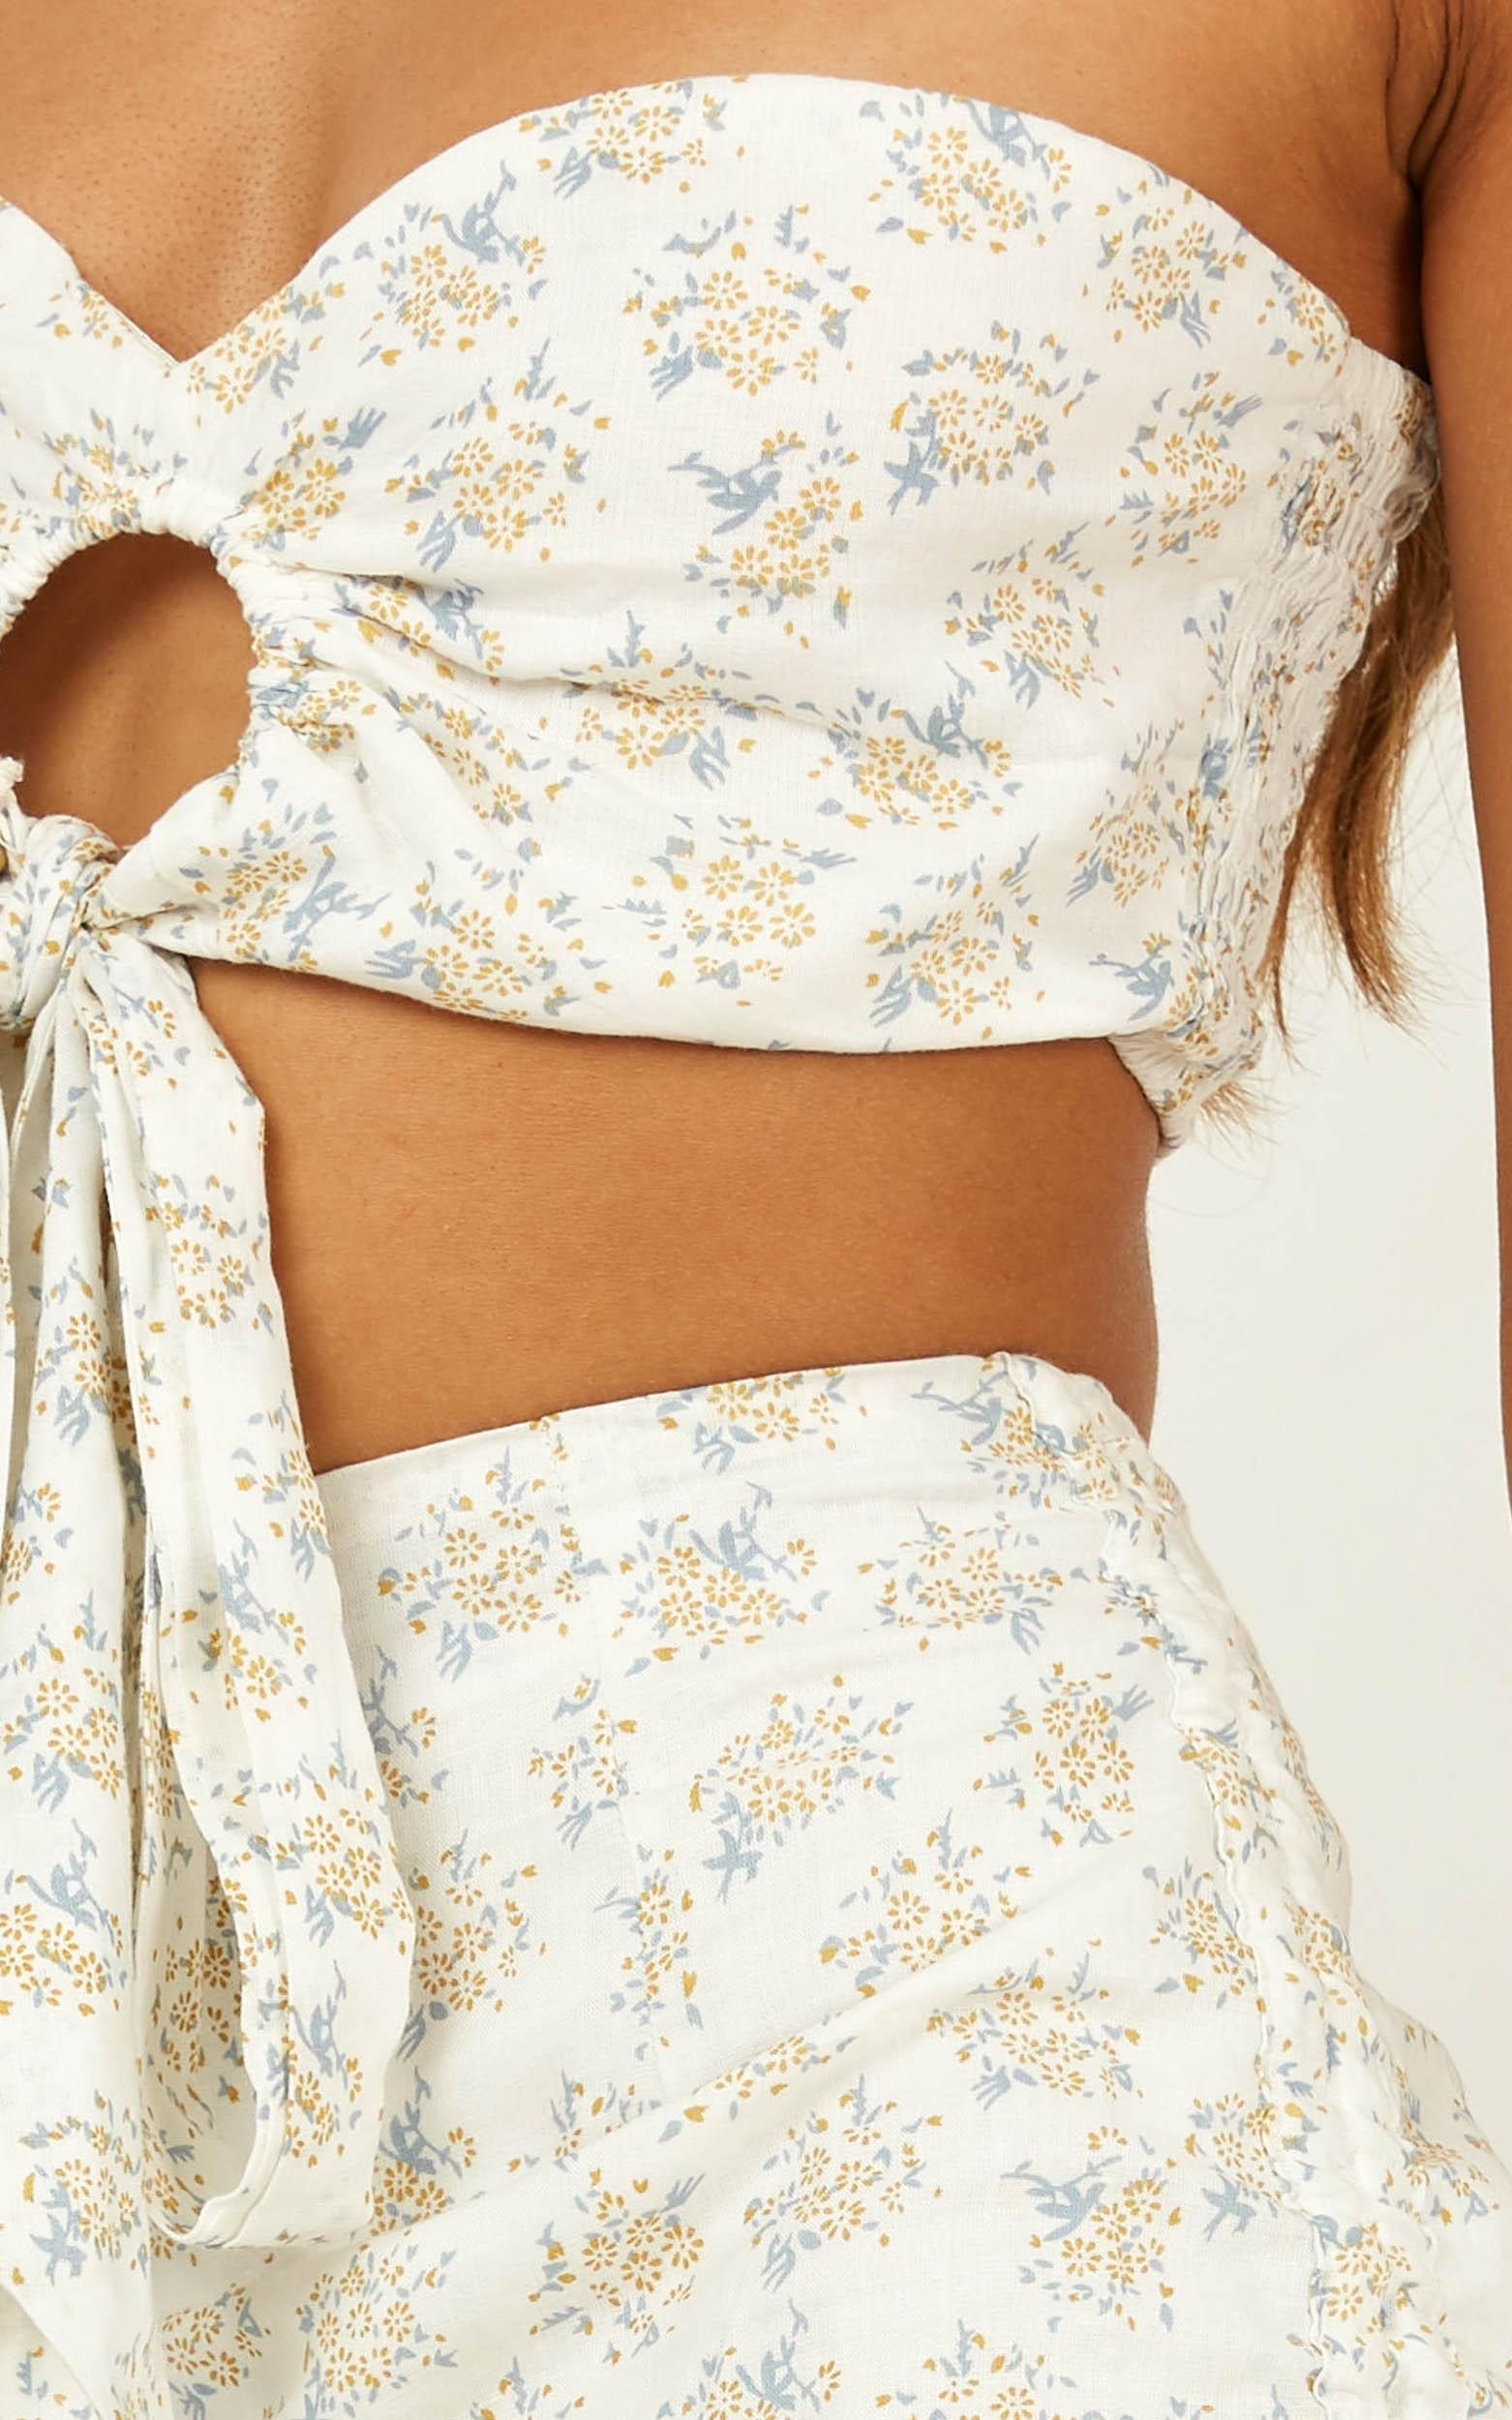 Dreams in Paris Skirt In white floral - 20 (XXXXL), White, hi-res image number null